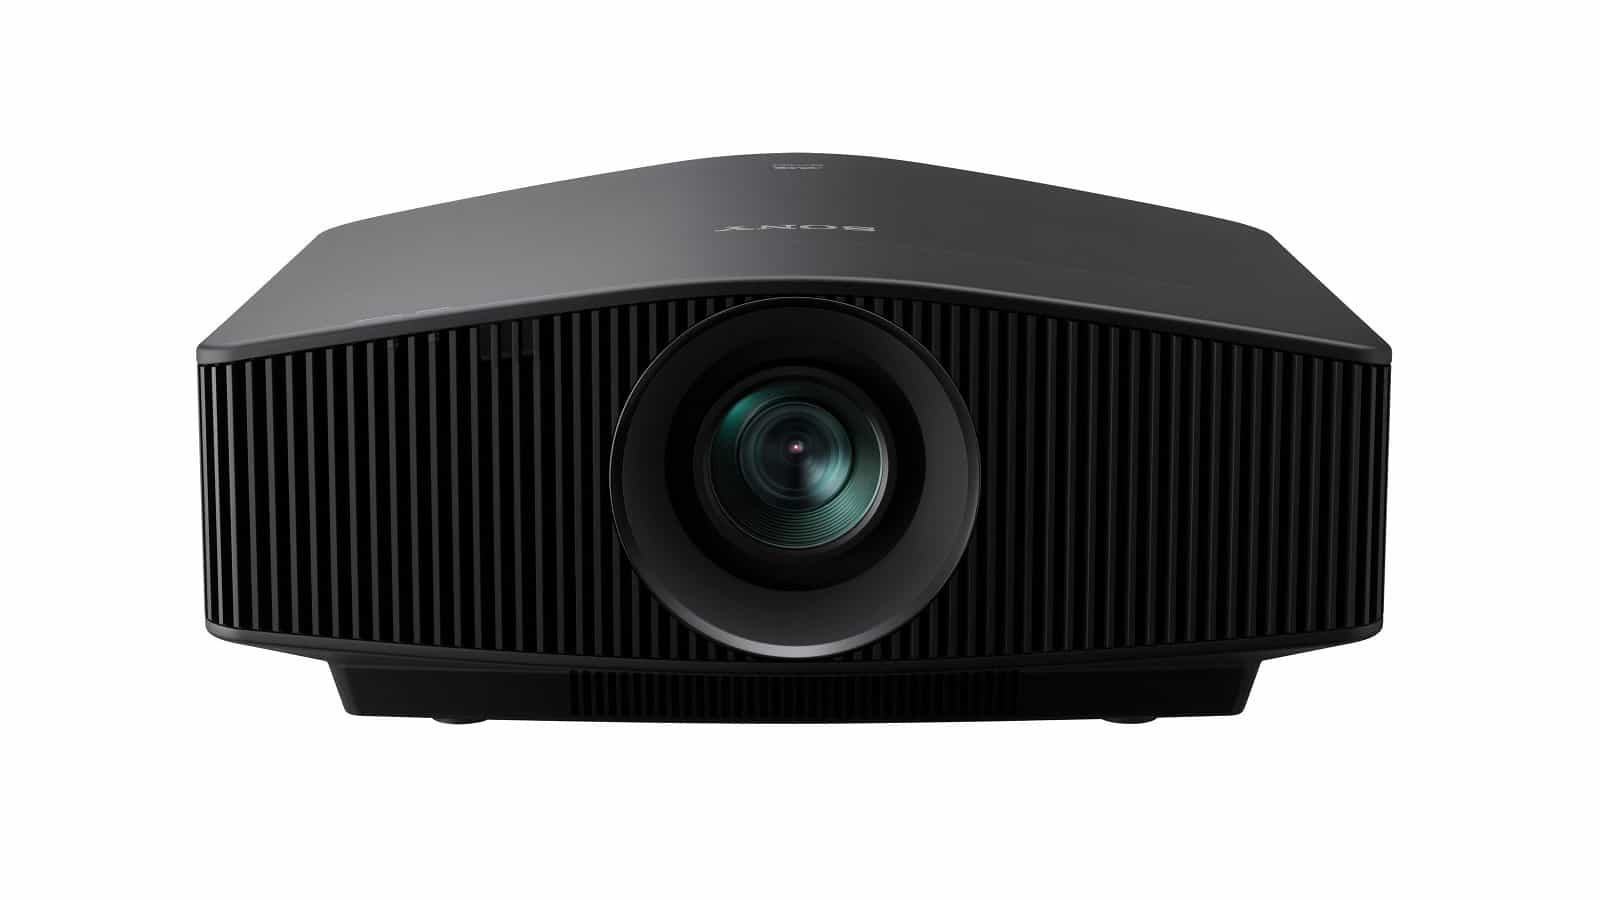 sony-vplvw885es-4k-sxrd-home-cinema-projector